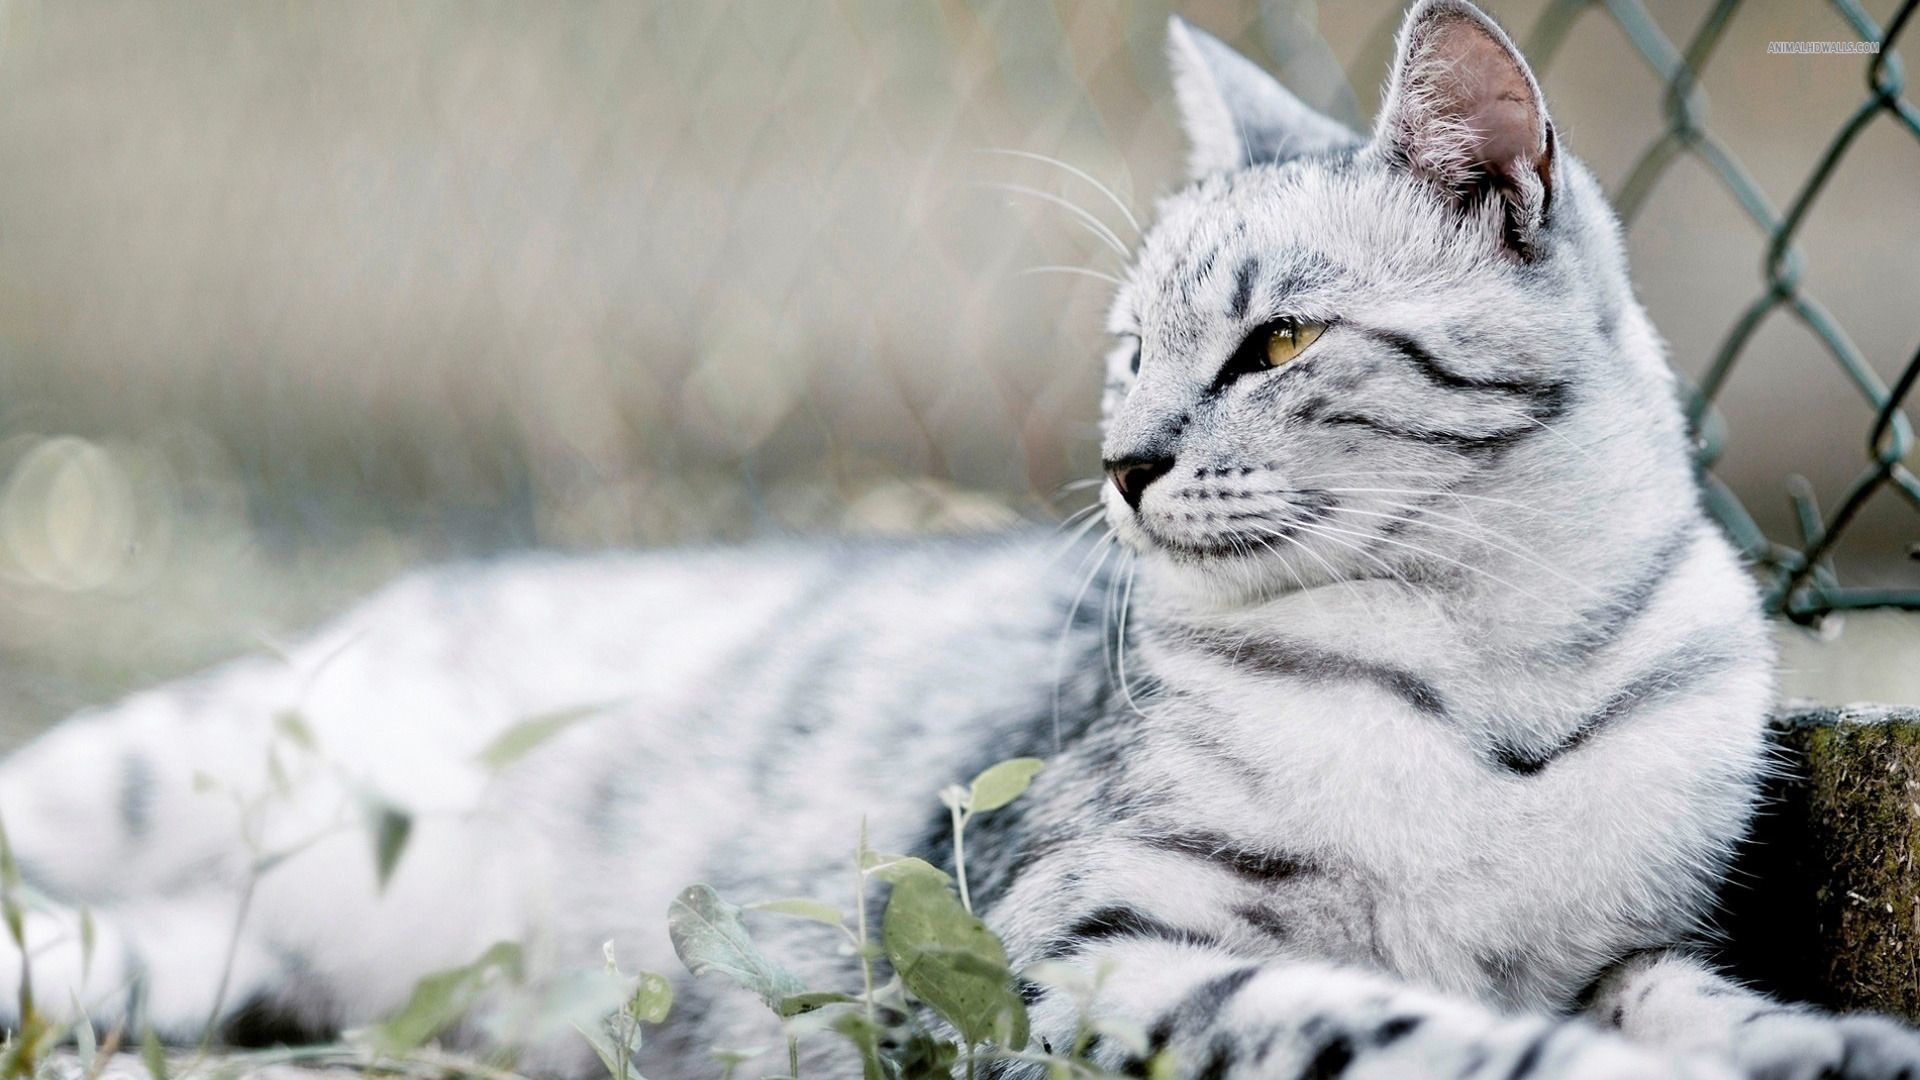 1920x1080 High Resolution Cute Animal Kitty Cat Desktop Background 12 .